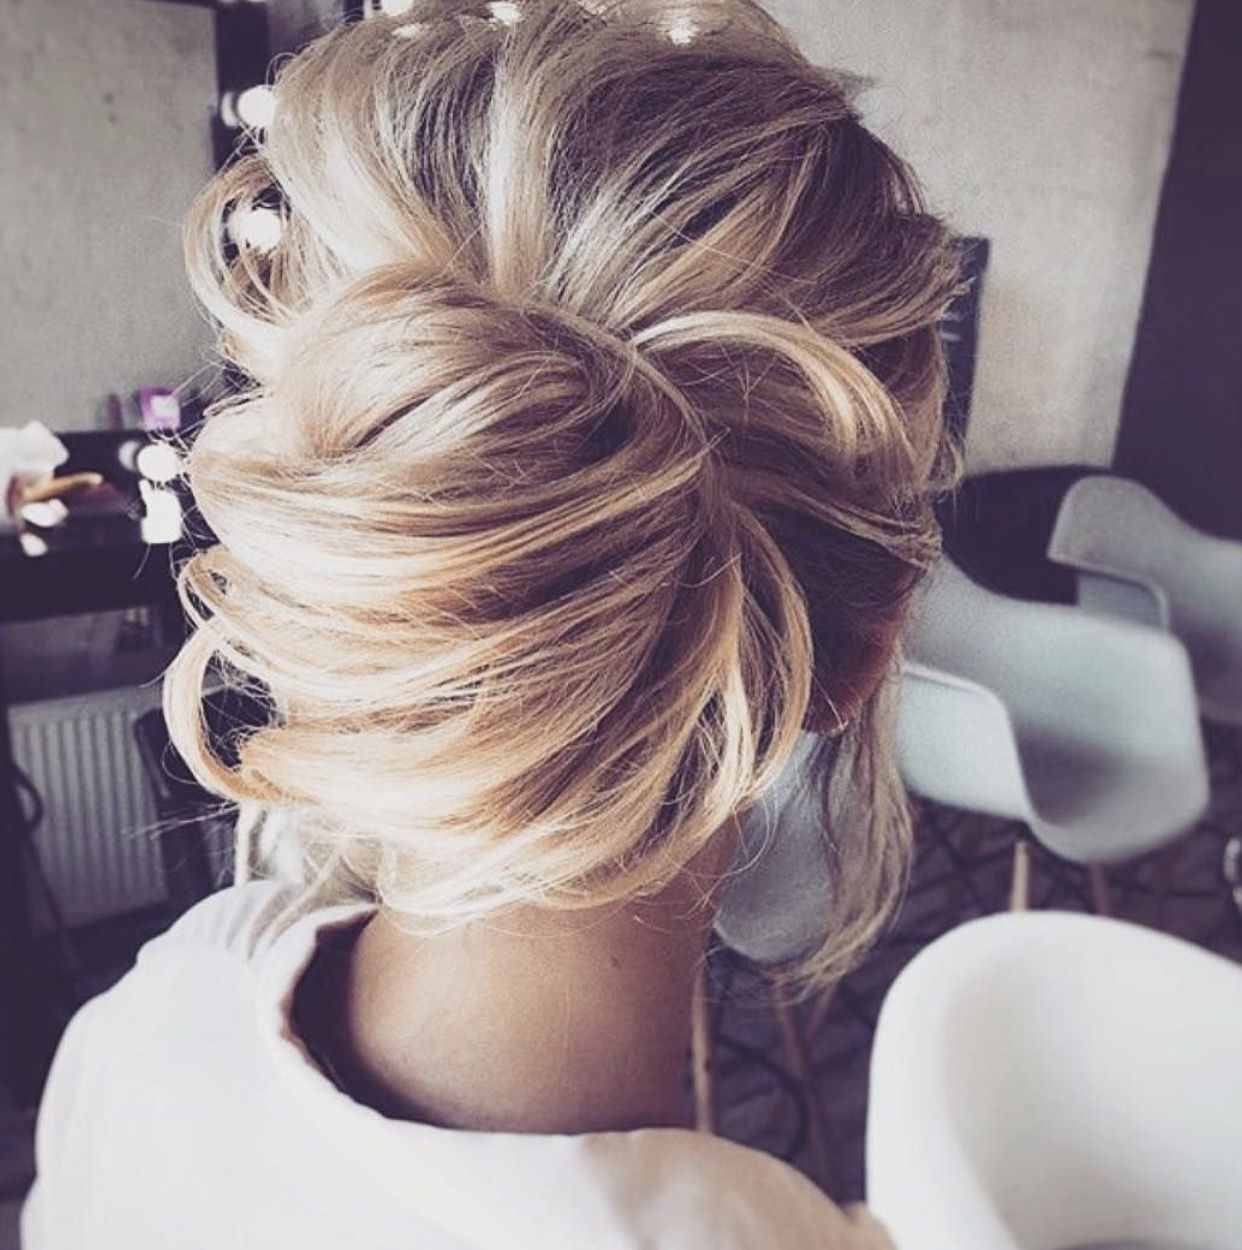 This too up dos braids and ponies pinterest hair style